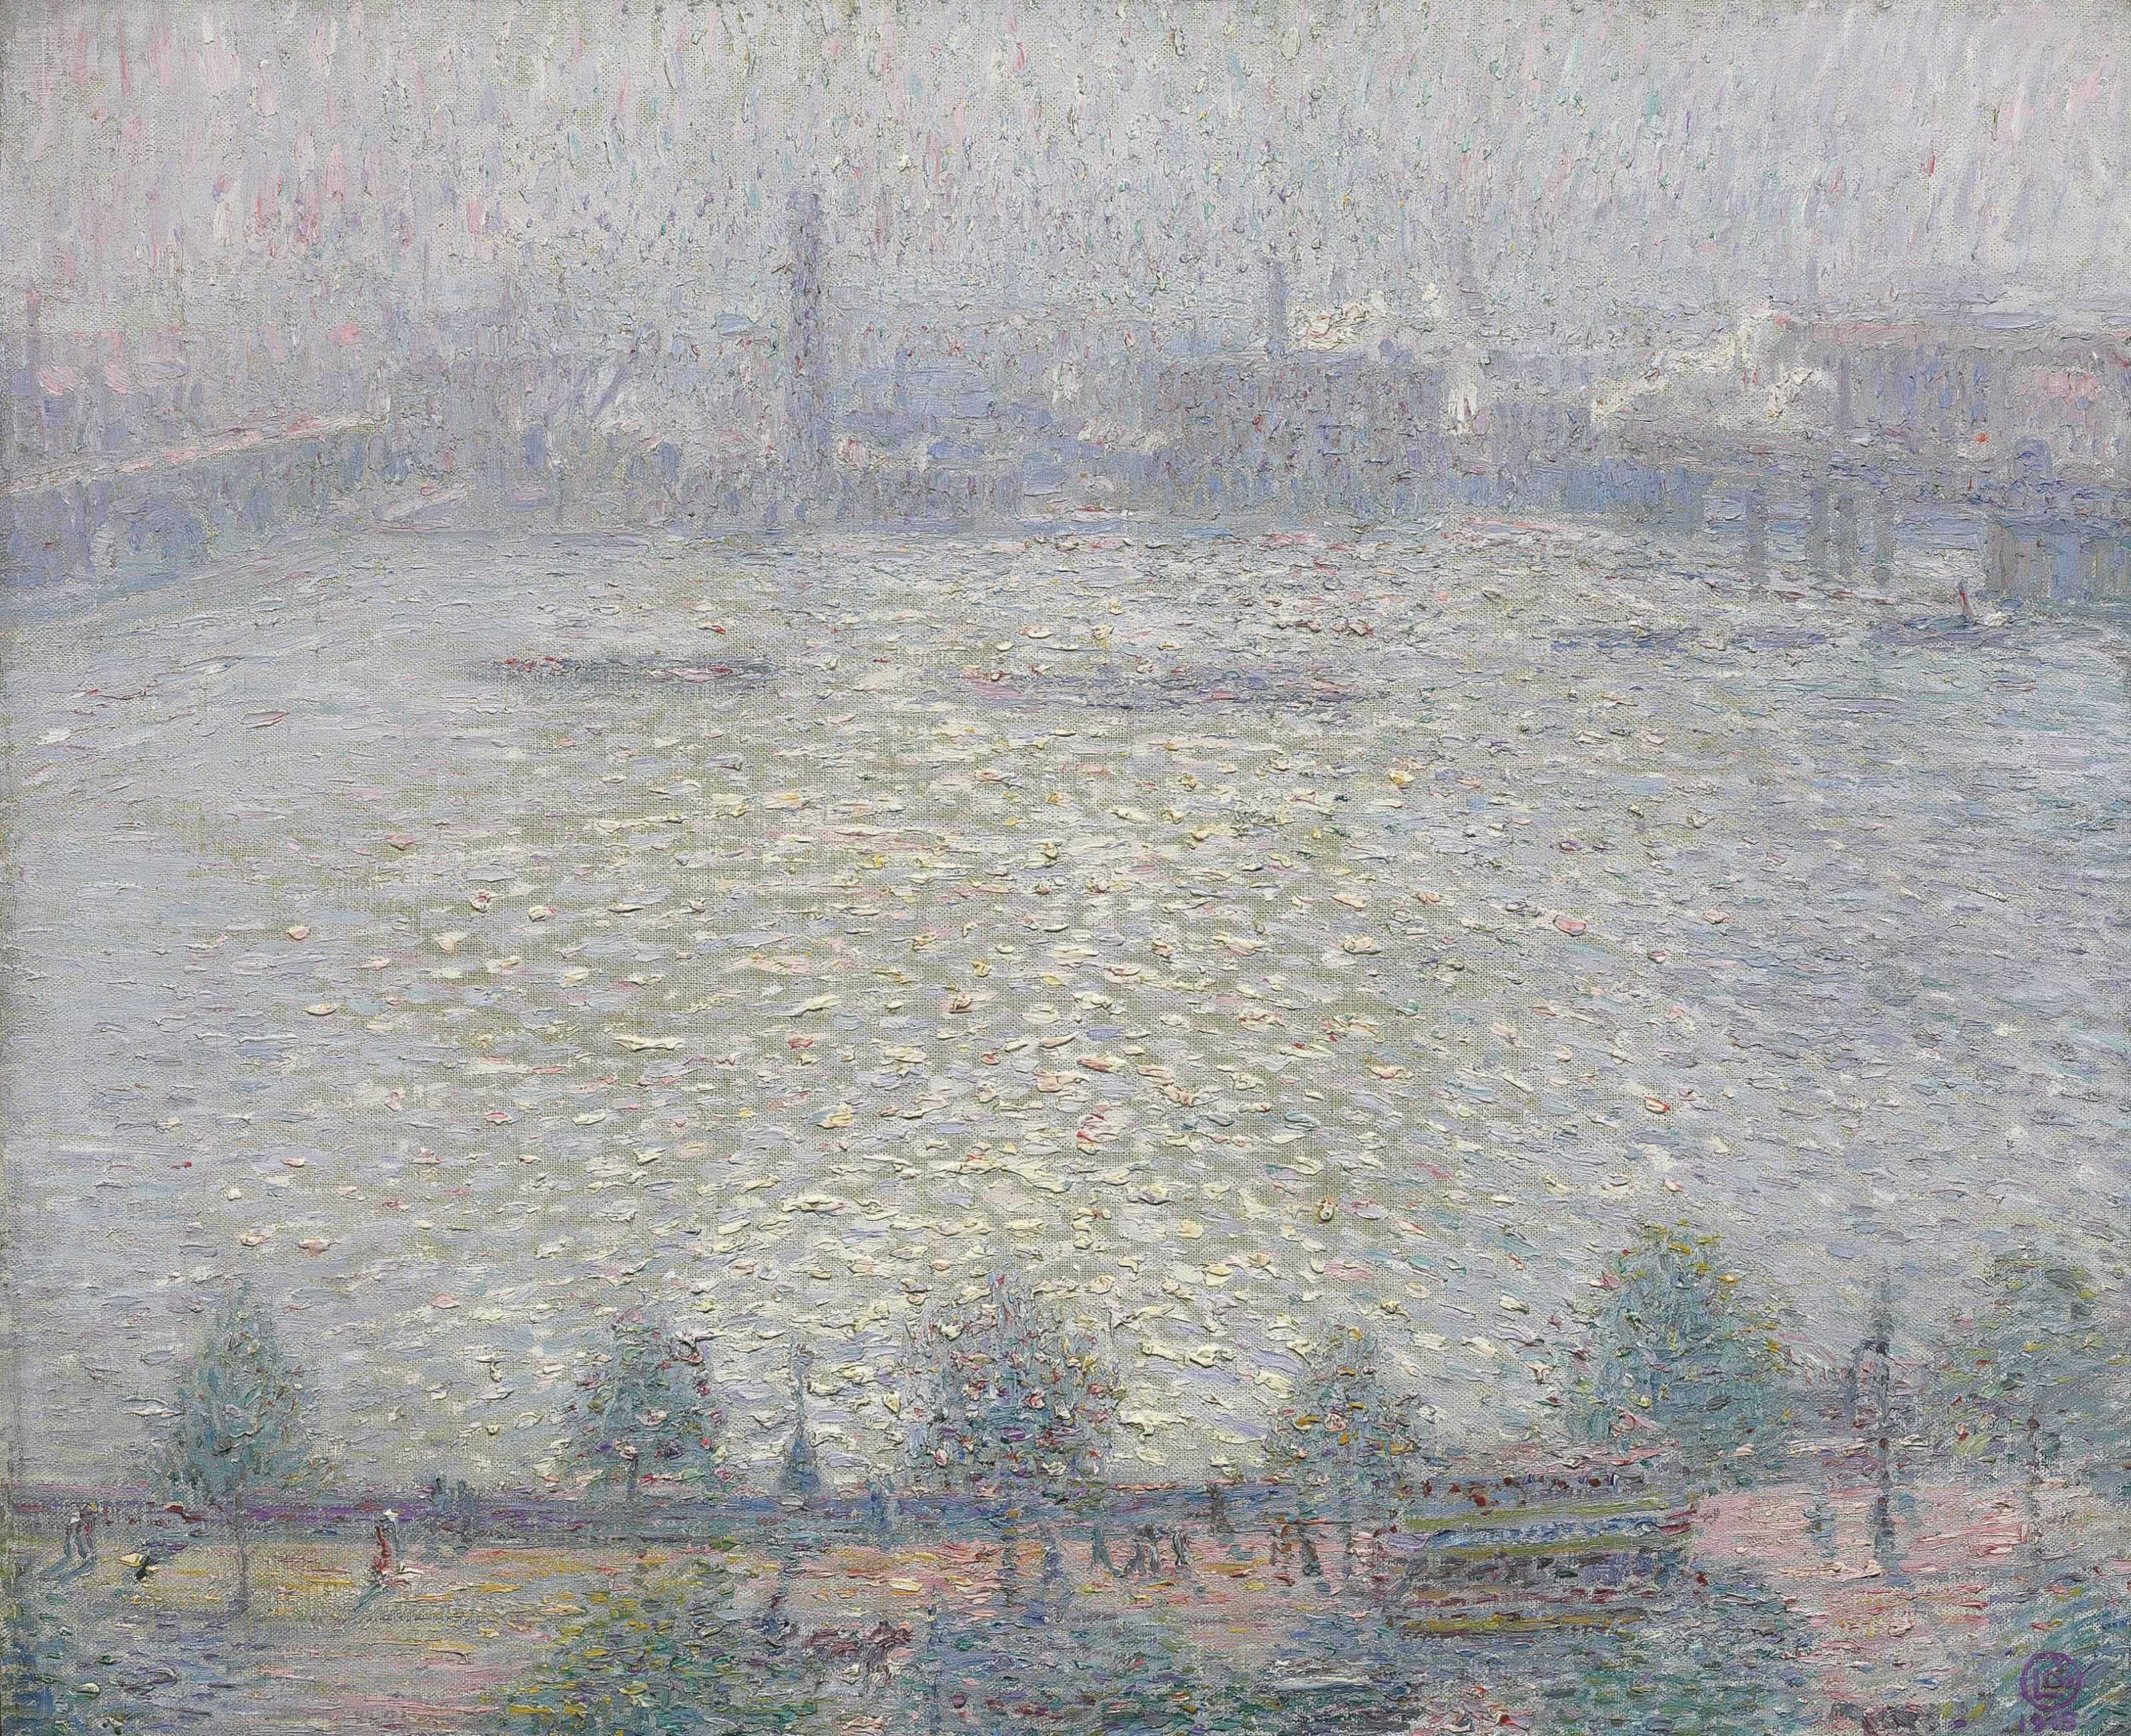 View of the Thames Embankment